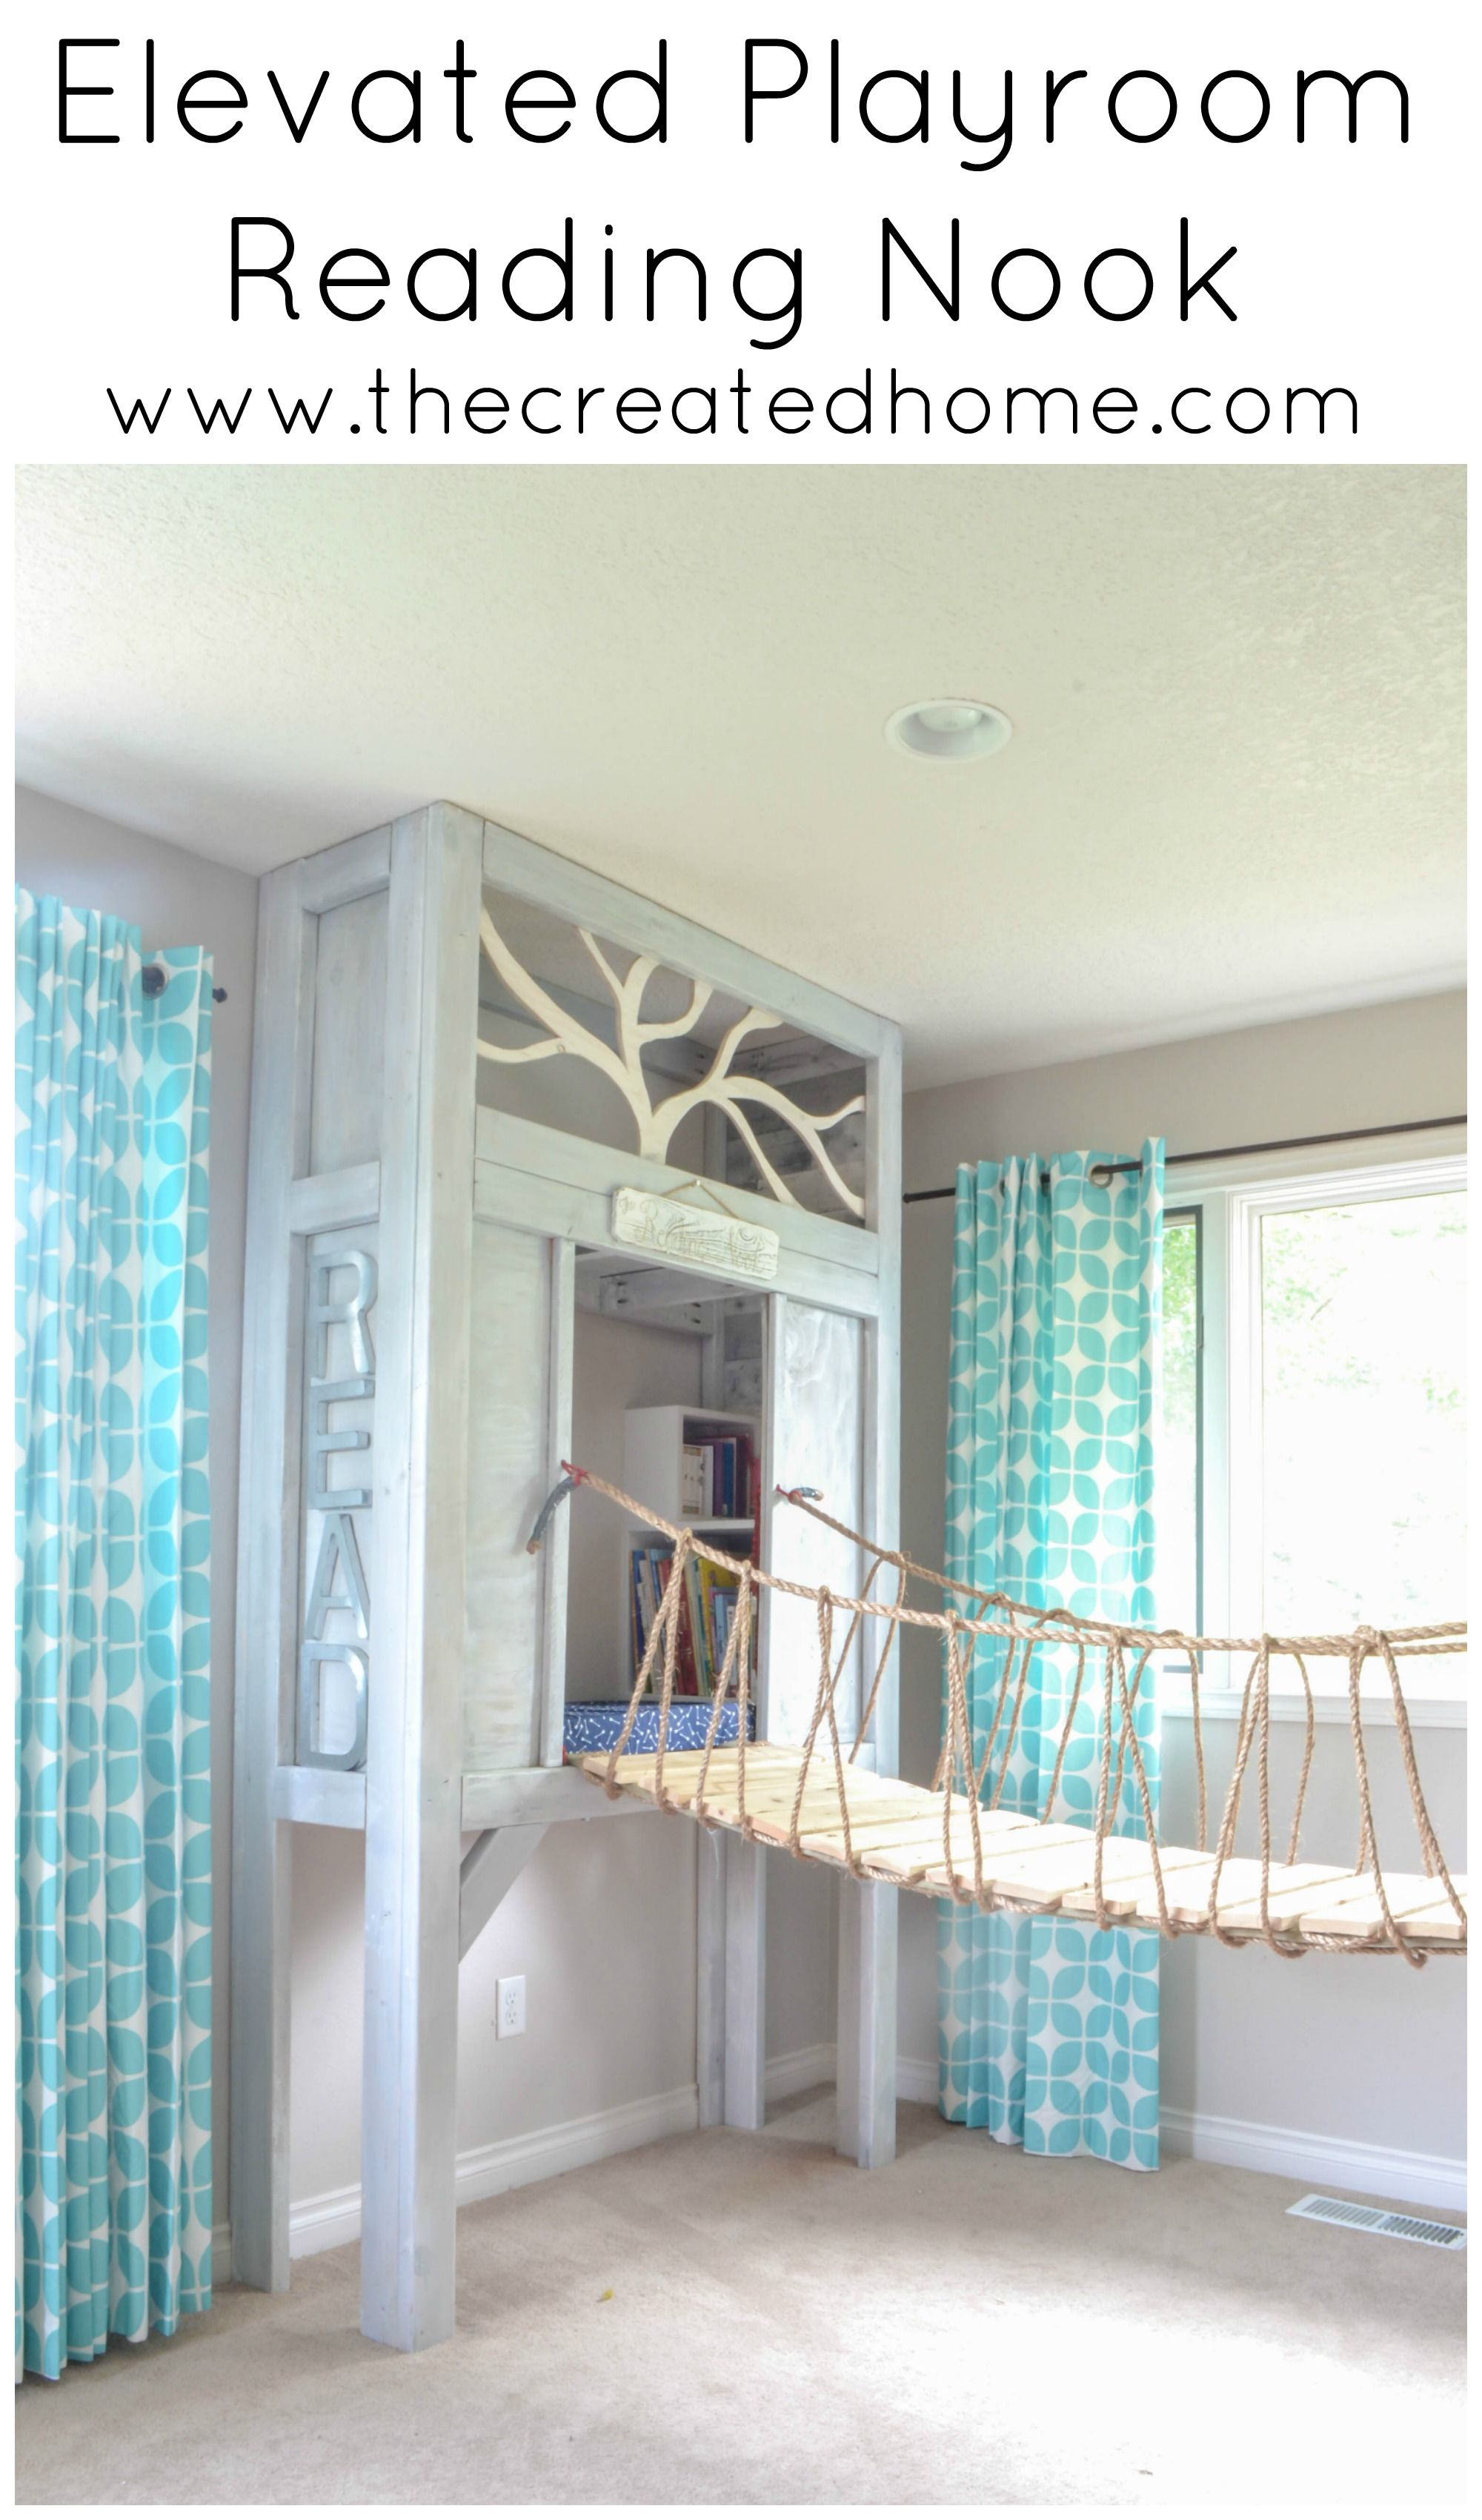 How to build an elevated reading nook. Remodelaholic